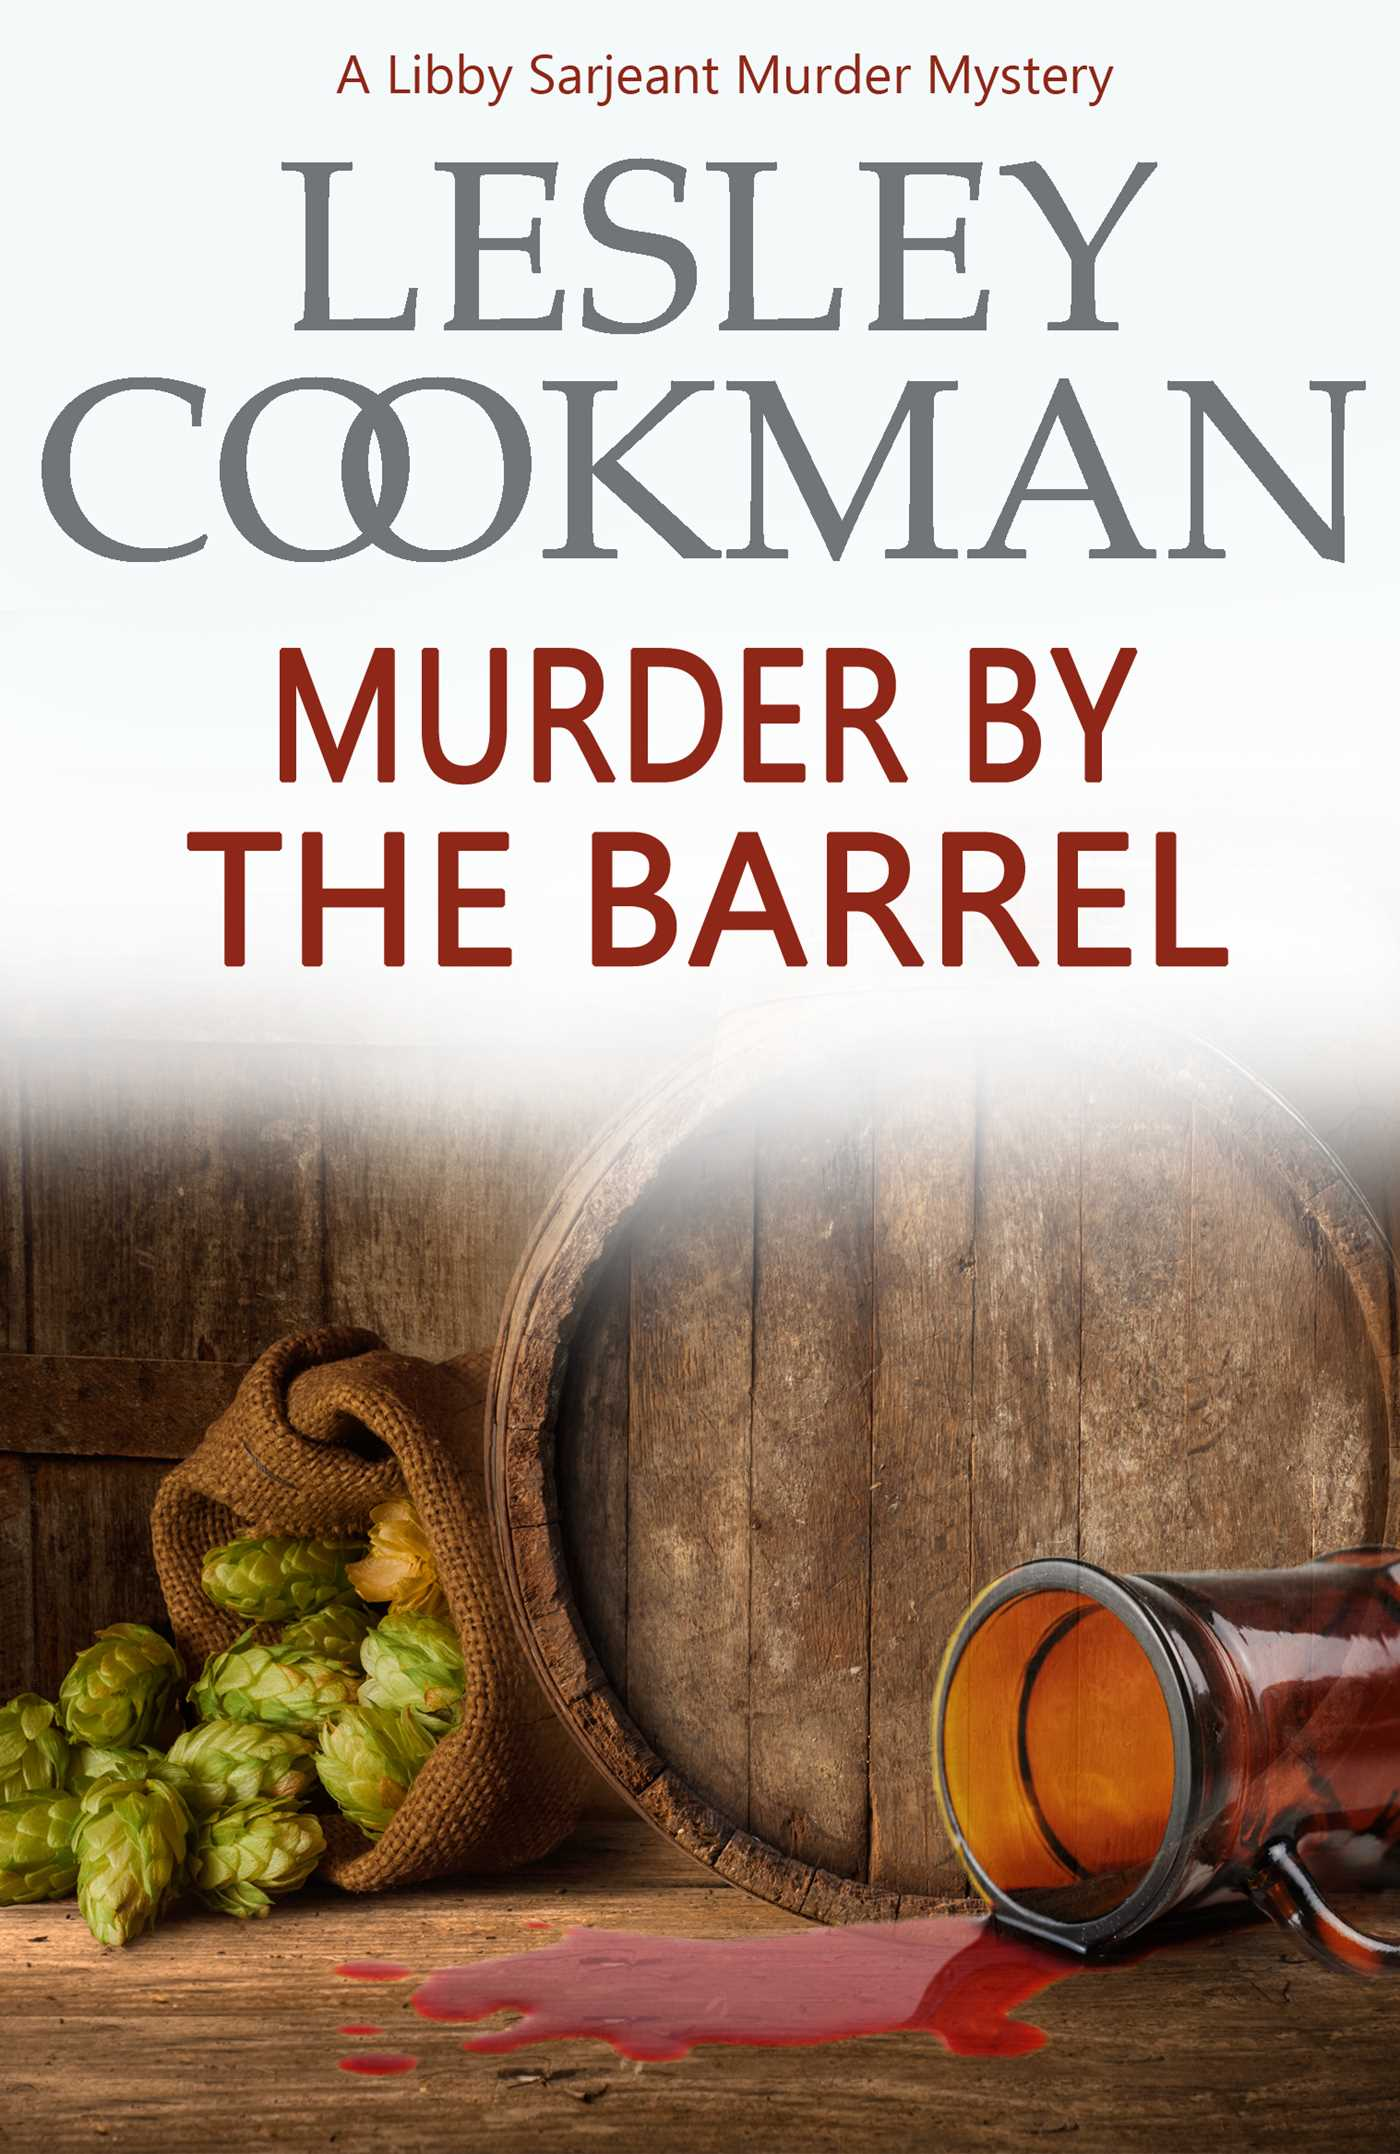 Murder by the barrel 9781635969986 hr